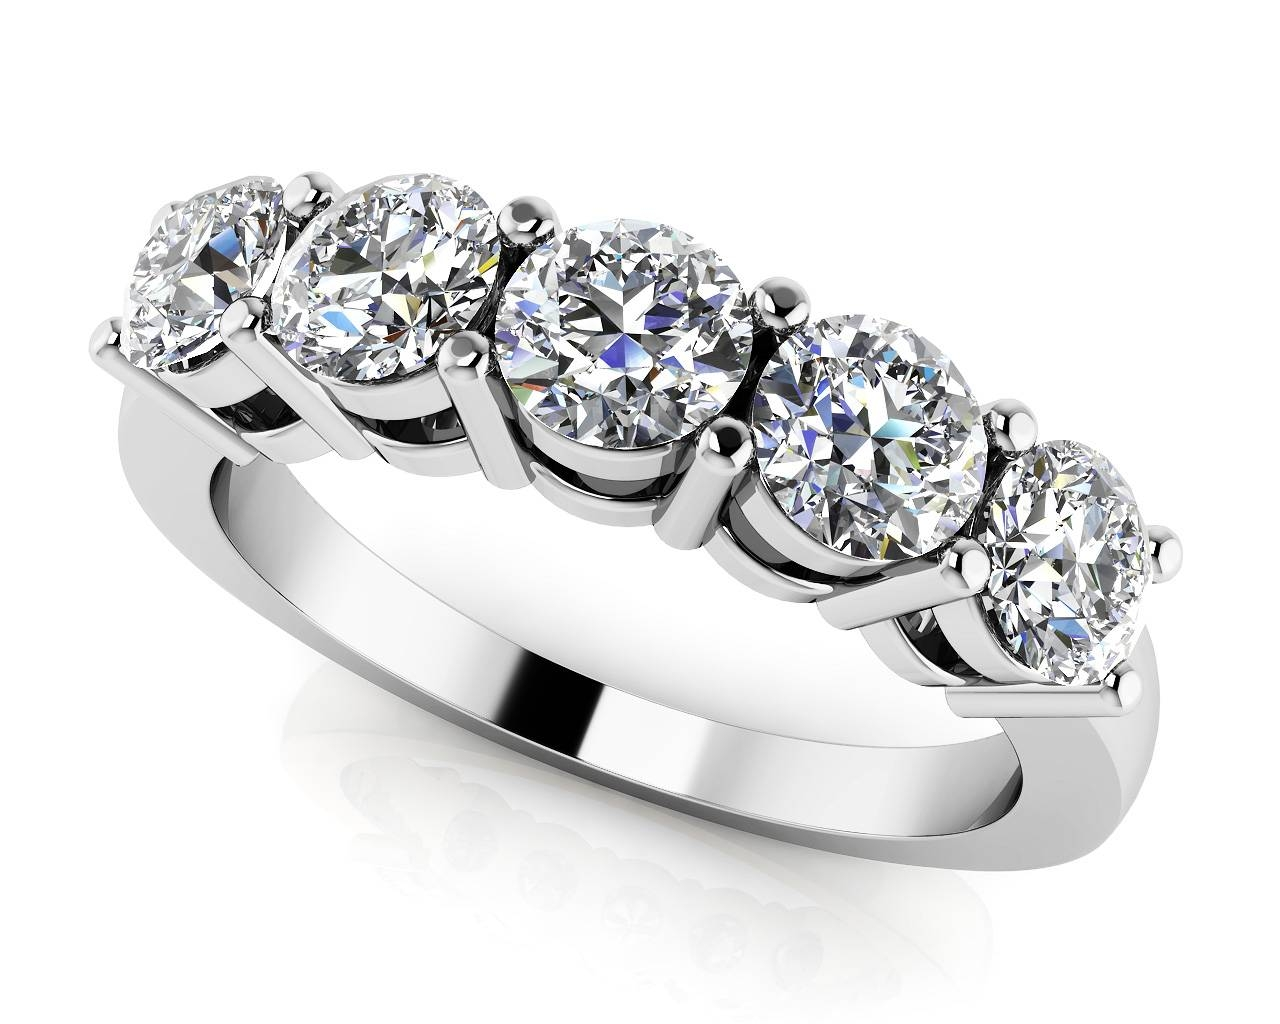 Design Your Own Diamond Anniversary Ring & Eternity Ring With Recent Vintage Anniversary Rings For Her (View 5 of 25)